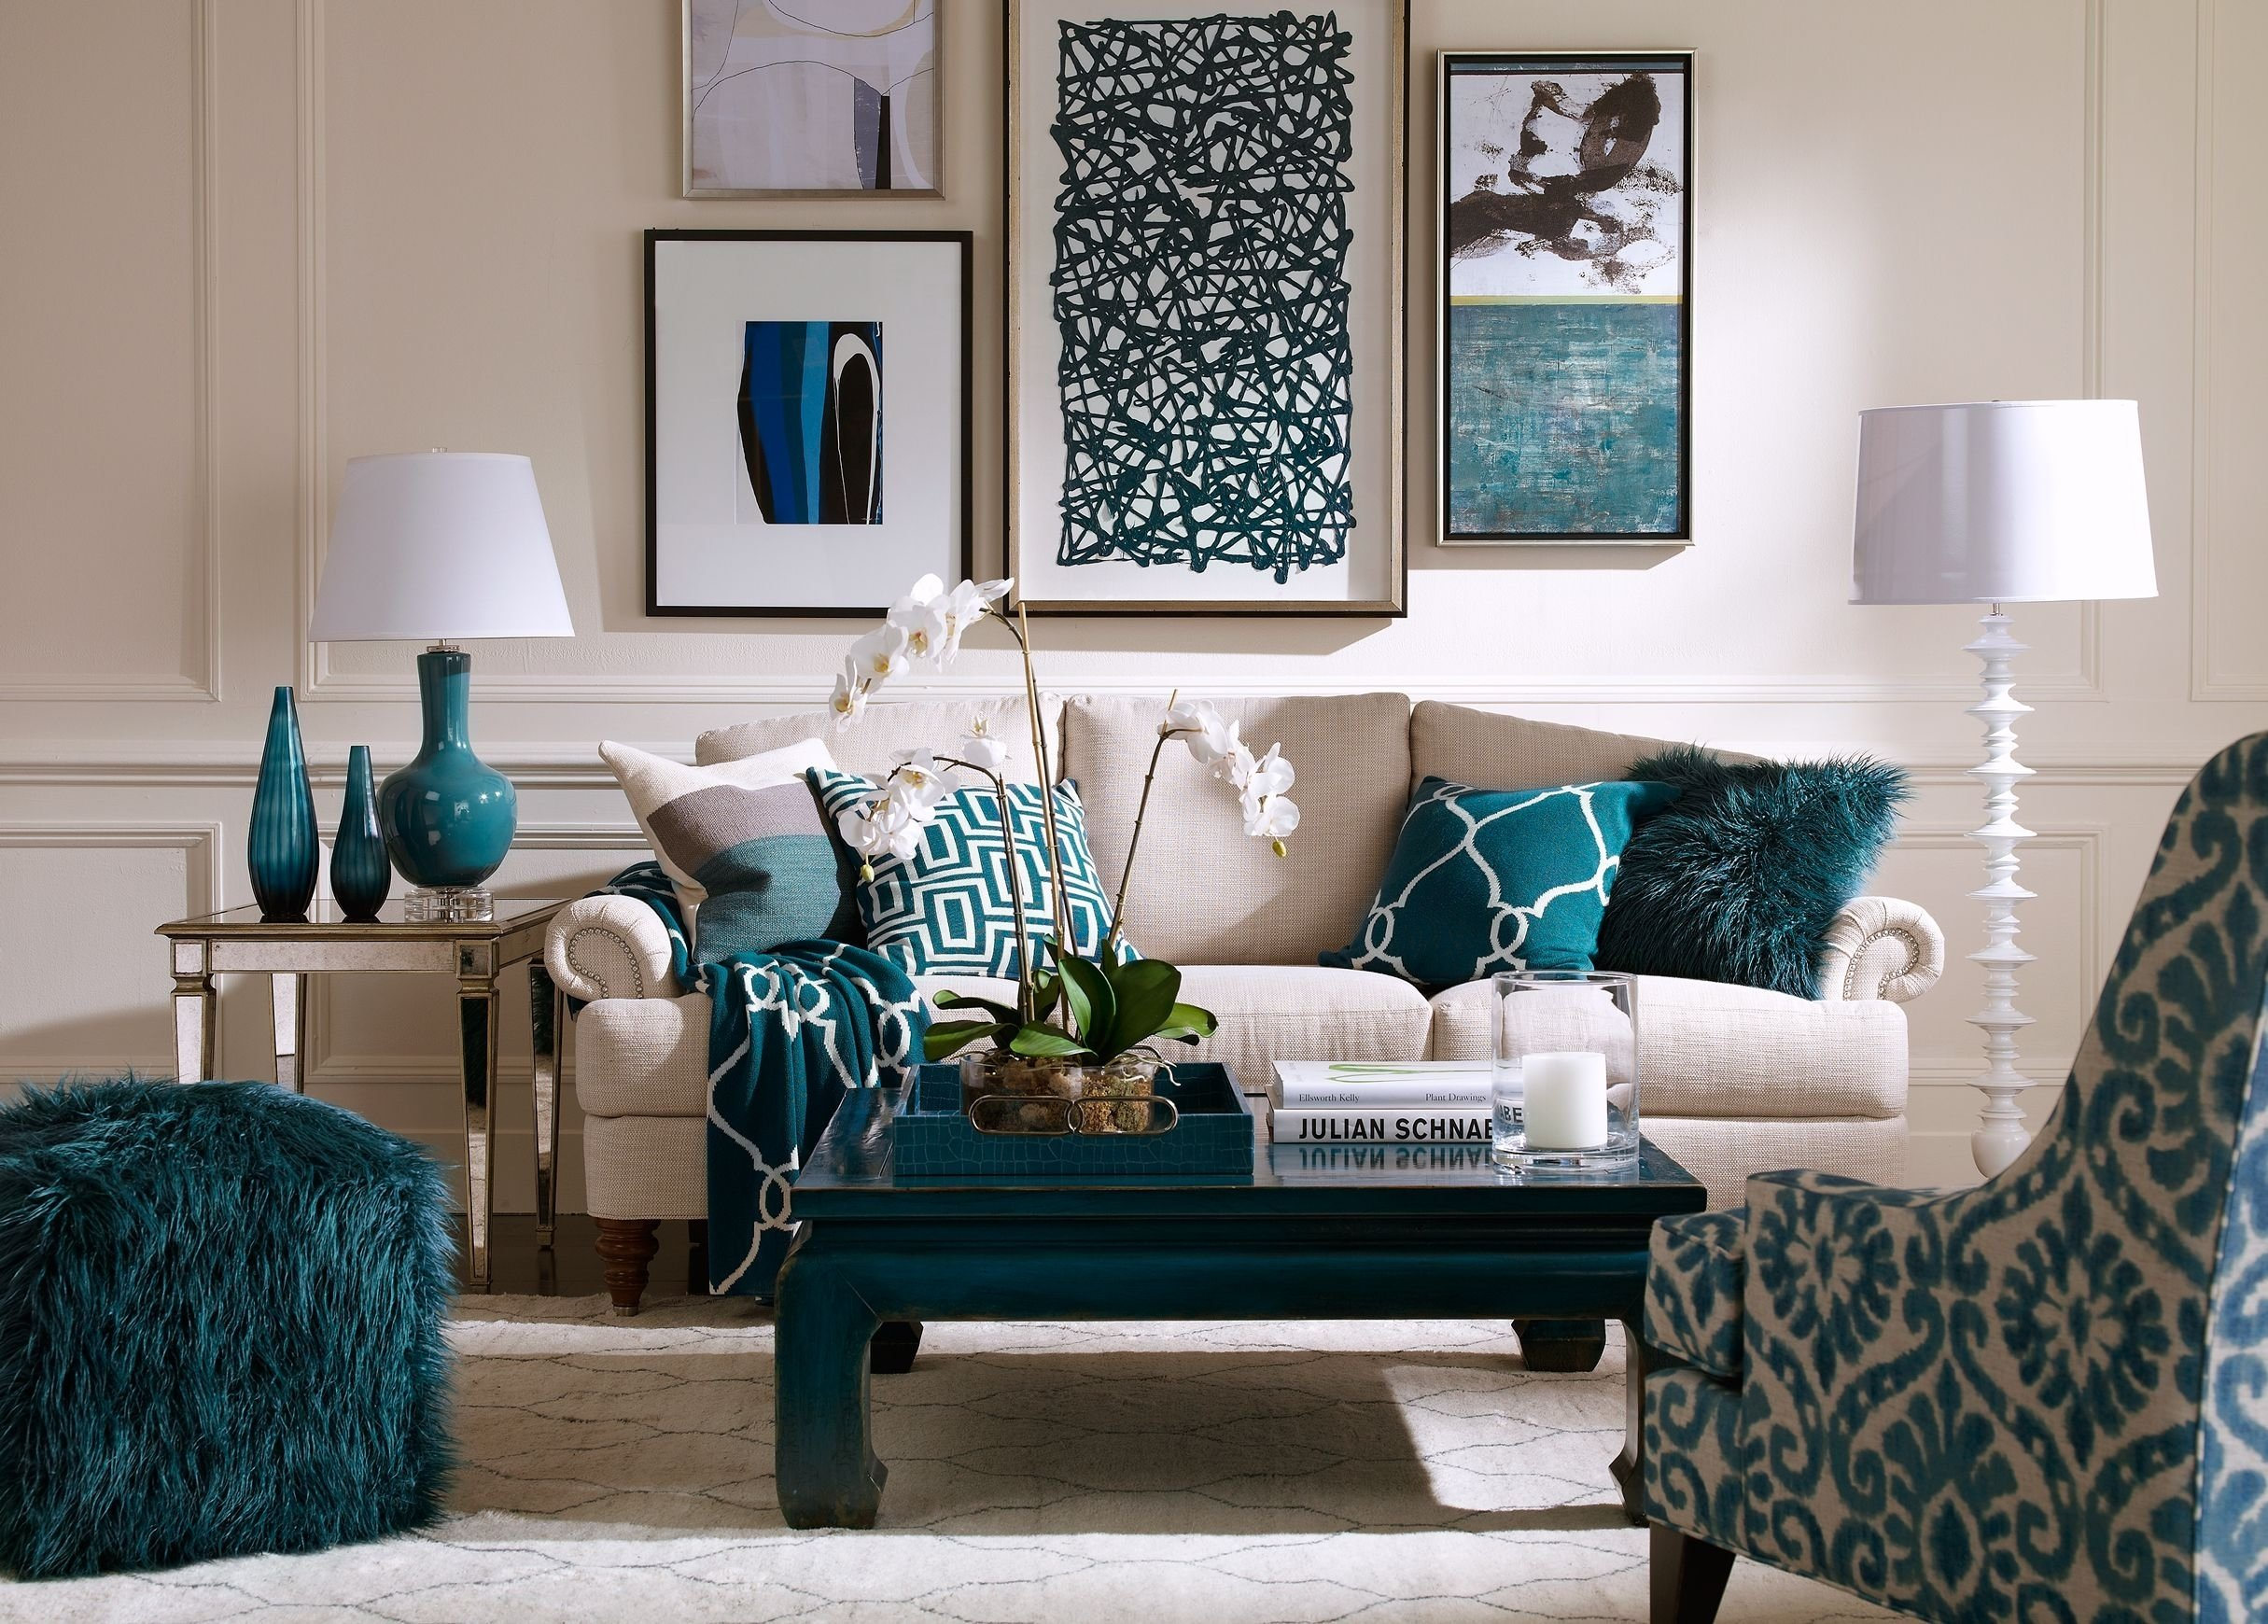 10 Elegant Living Room Furniture Decorating Ideas 15 best images about turquoise room decorations living rooms